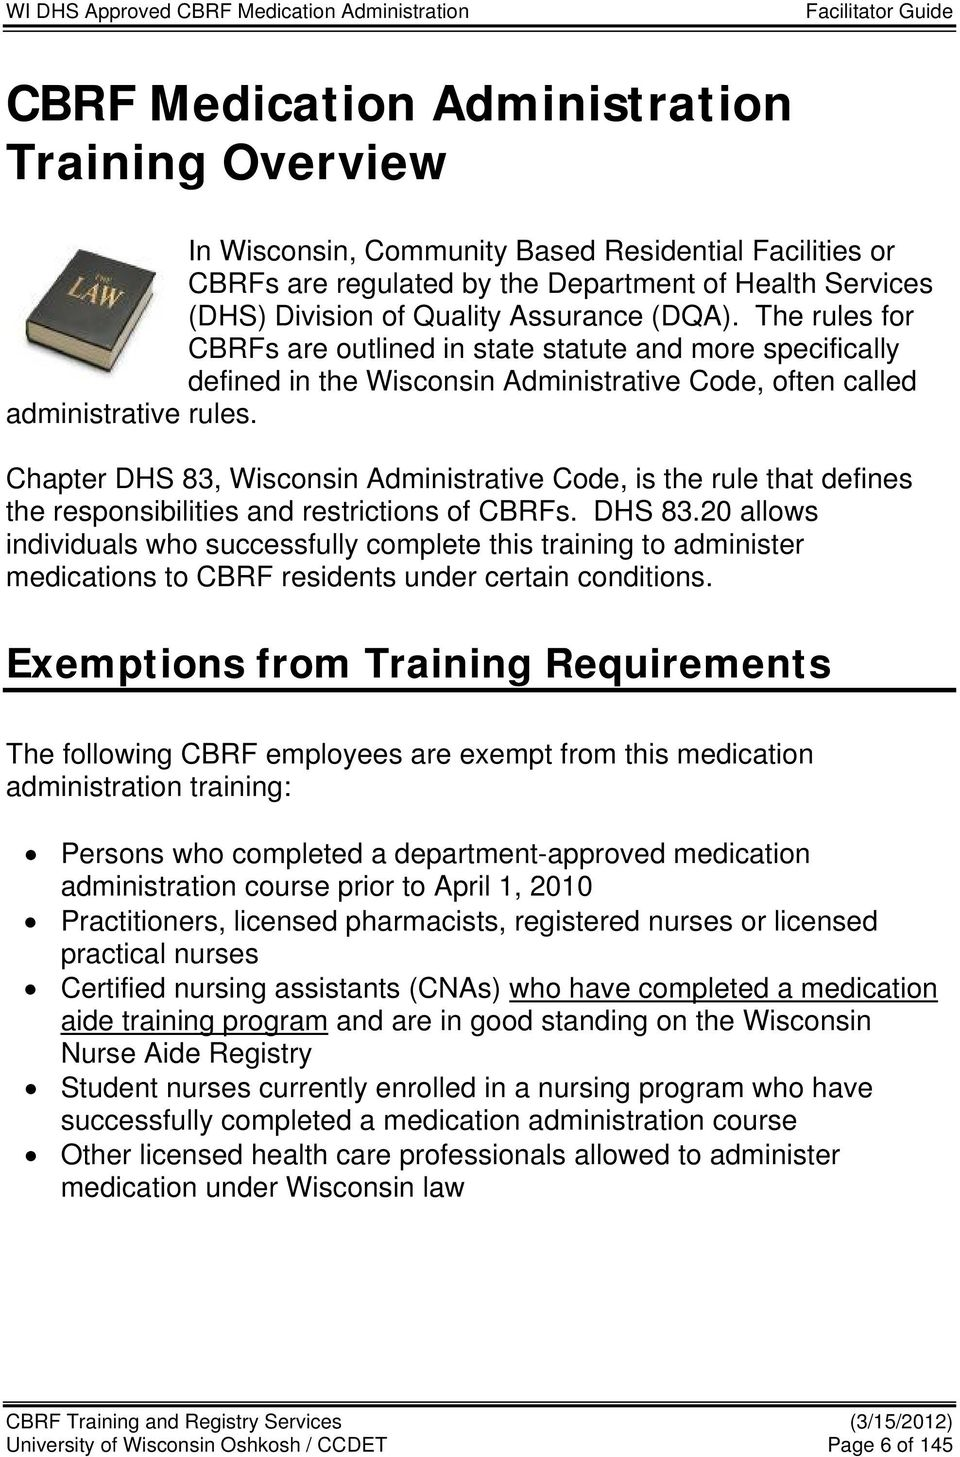 Chapter DHS 83, Wisconsin Administrative Code, is the rule that defines the responsibilities and restrictions of CBRFs. DHS 83.20 allows individuals who successfully complete this training to administer medications to CBRF residents under certain conditions.